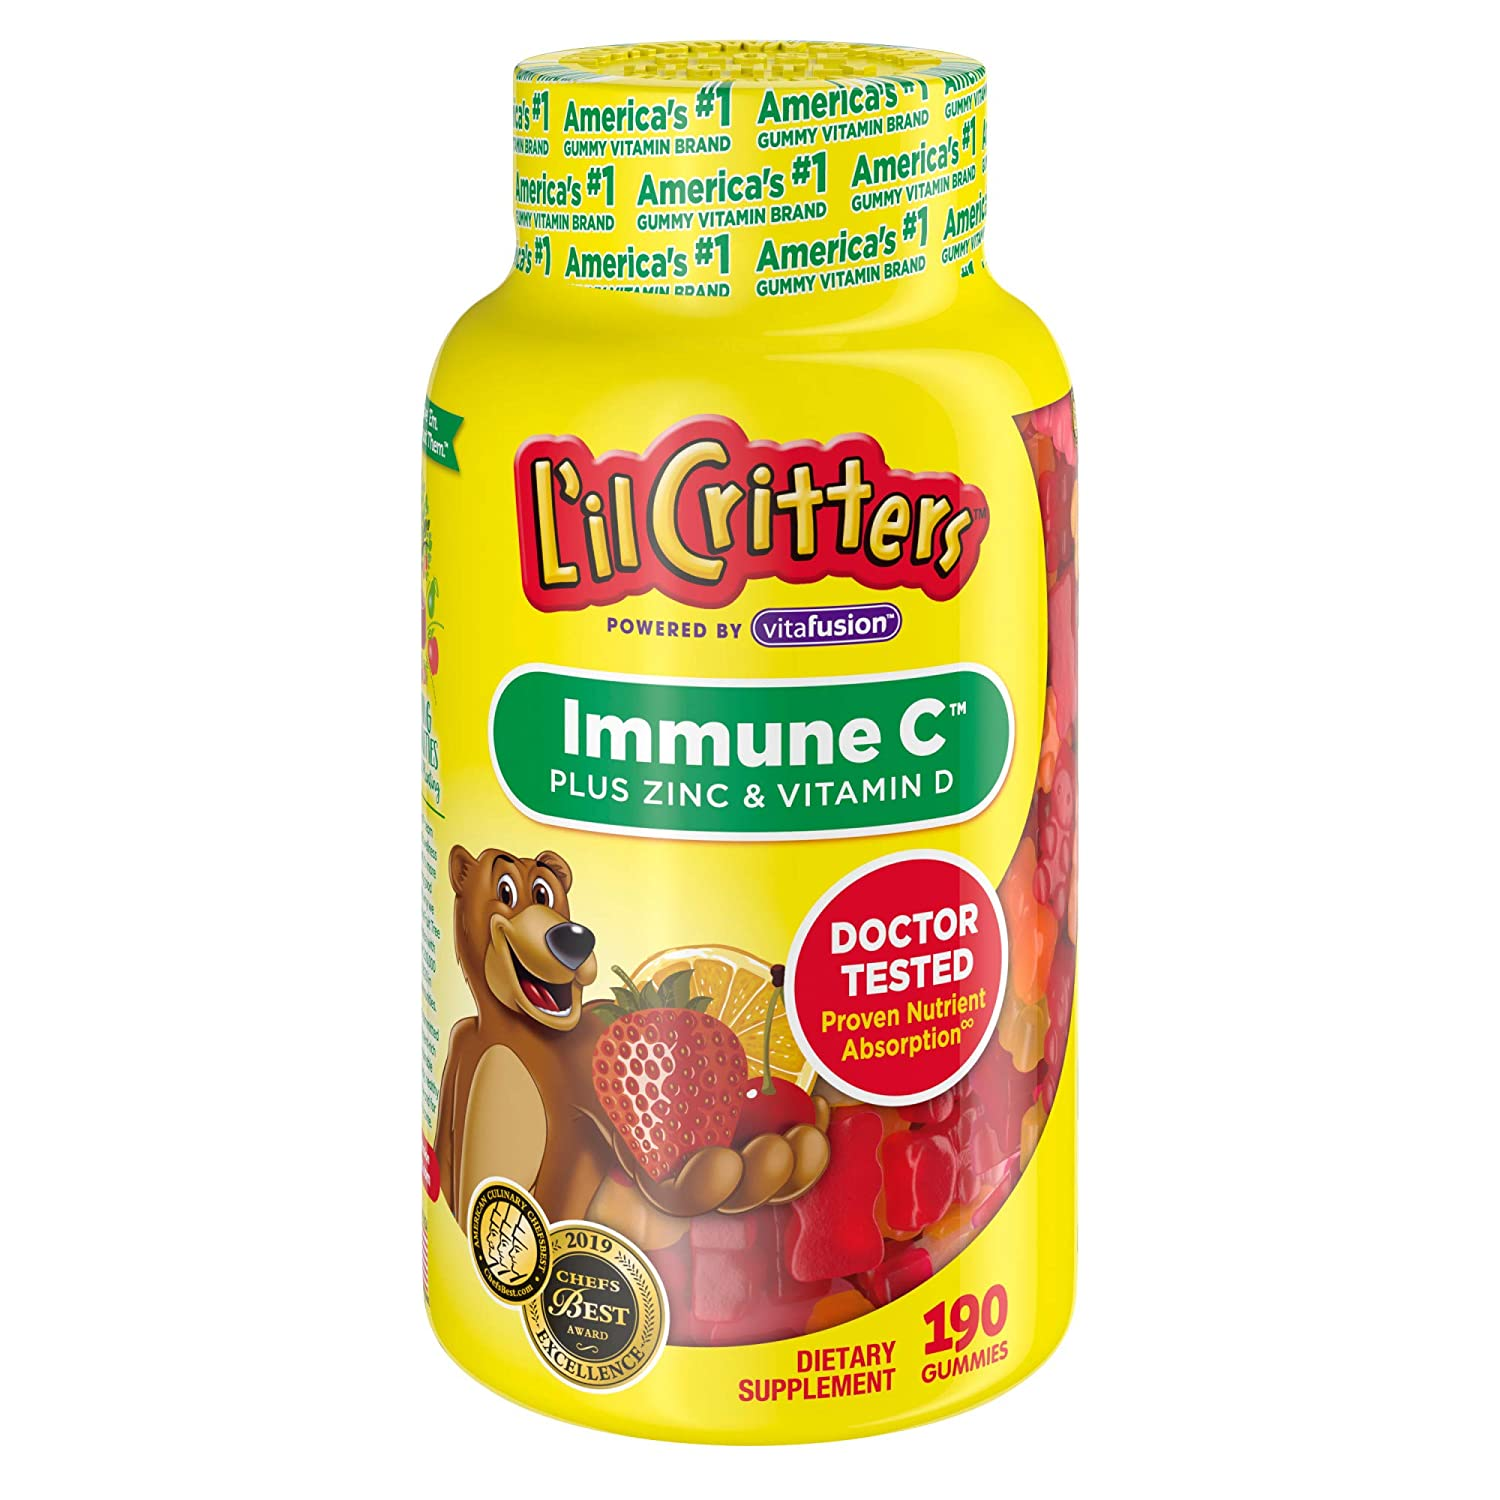 Lil Critters Immune C Plus Zinc & Vitamin D, 190Count (Packaging May Vary)